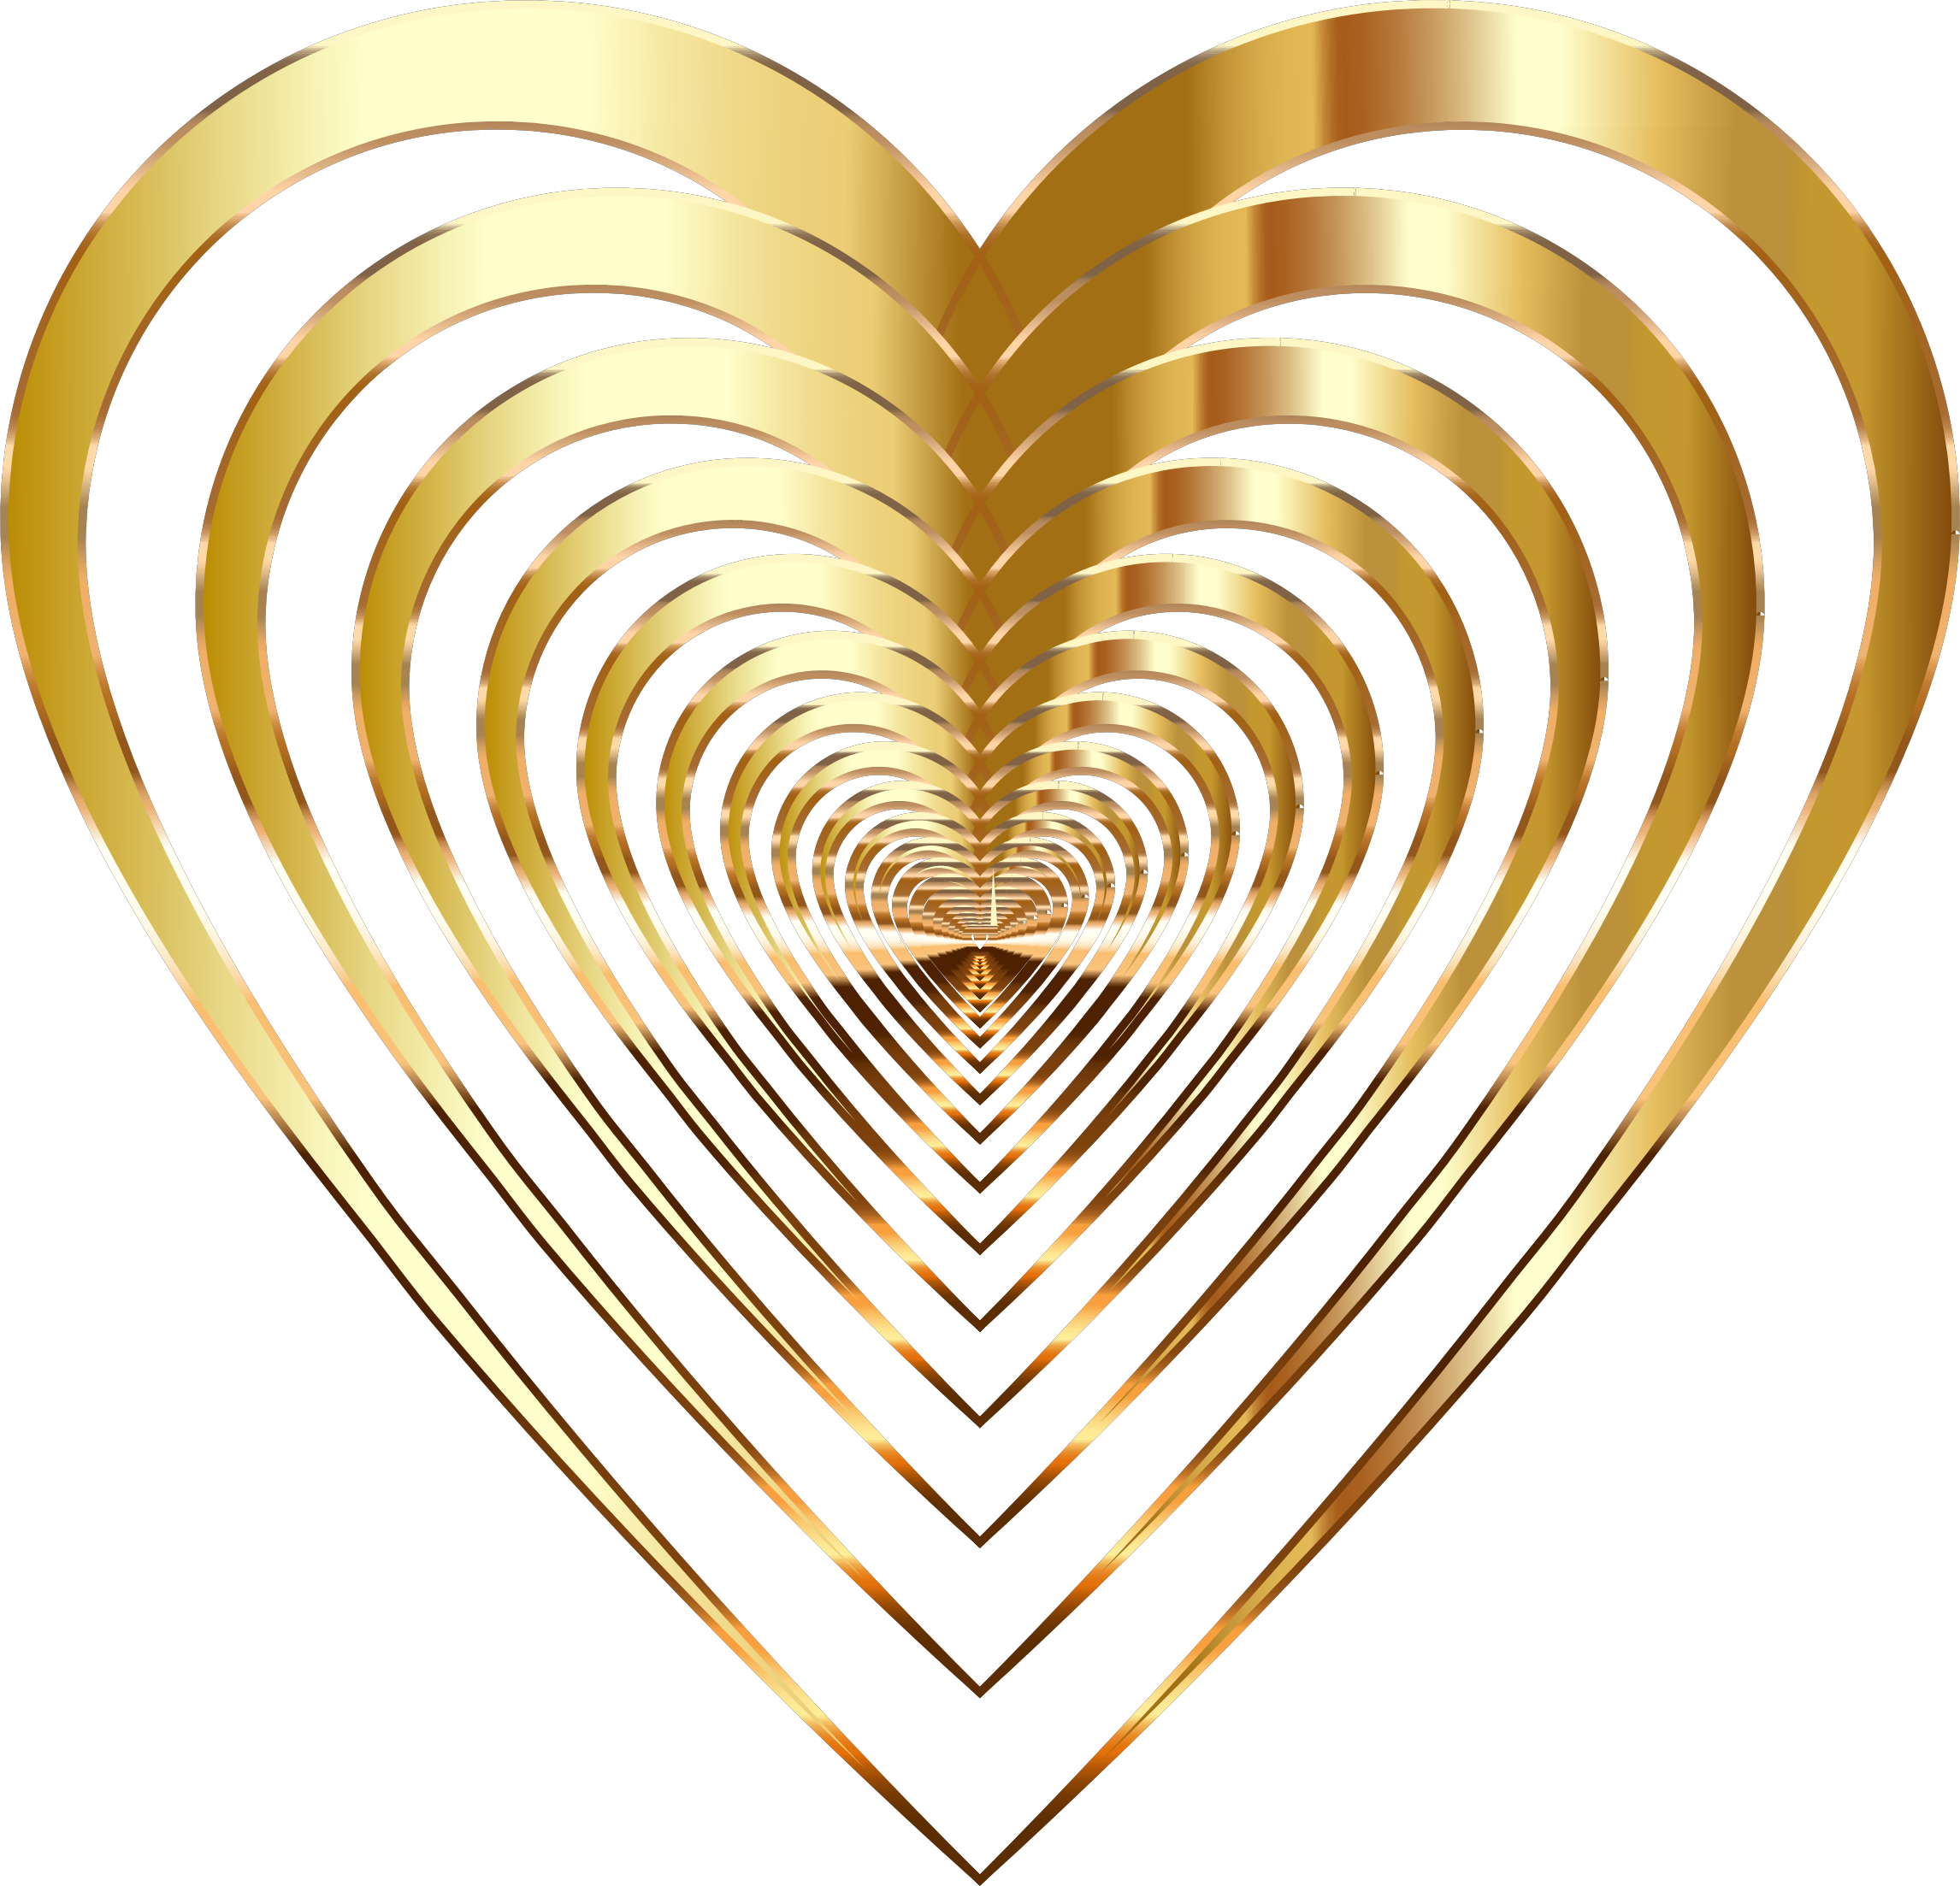 Gold heart clipart no background vector Clipart - Chromatic Love 3 No Background vector